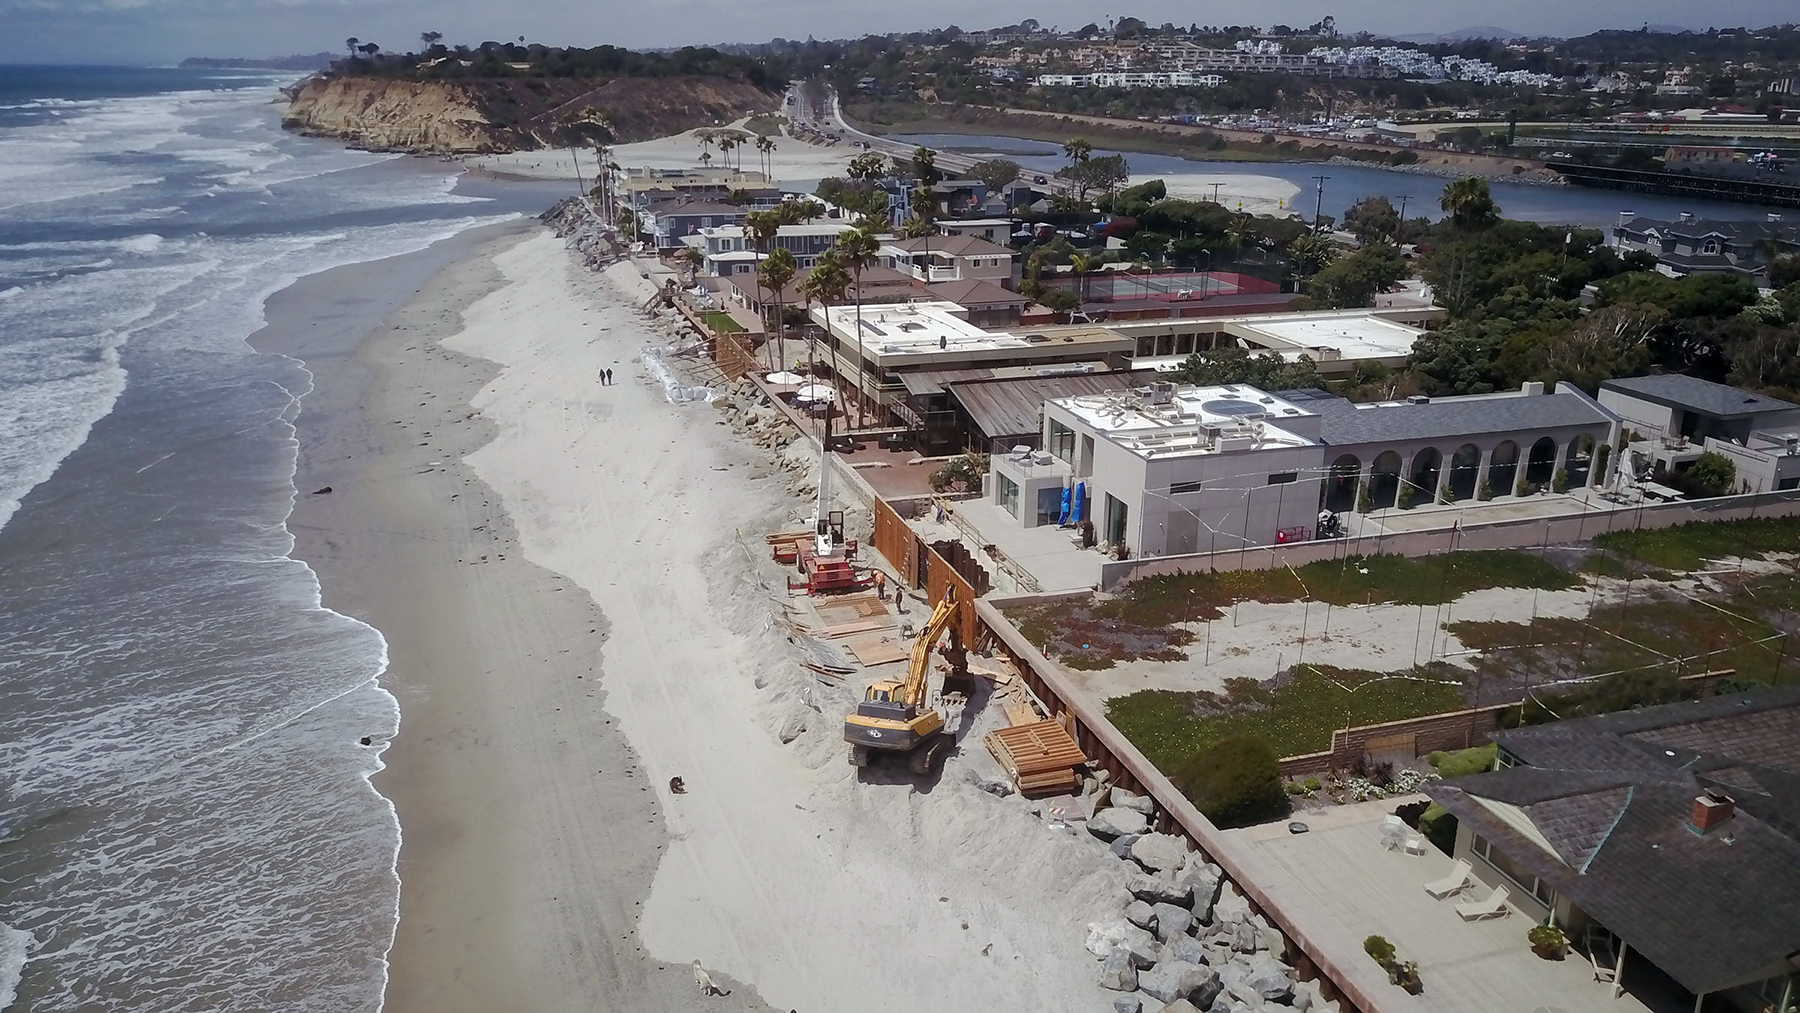 February 9, 2018 - San Diego, CA, USA - DEL MAR, CA.- MAY 21, 2018,-Homes along Ocean Front between Powerhouse Park and the mouth of the San Dieguito River are in high danger due to global warming. PHOTO/JOHN GIBBINS Staff photographer, San Diego Union-Tribune) copyright 2018 (Credit Image: © John Gibbins/San Diego Union-Tribune via ZUMA Wire)